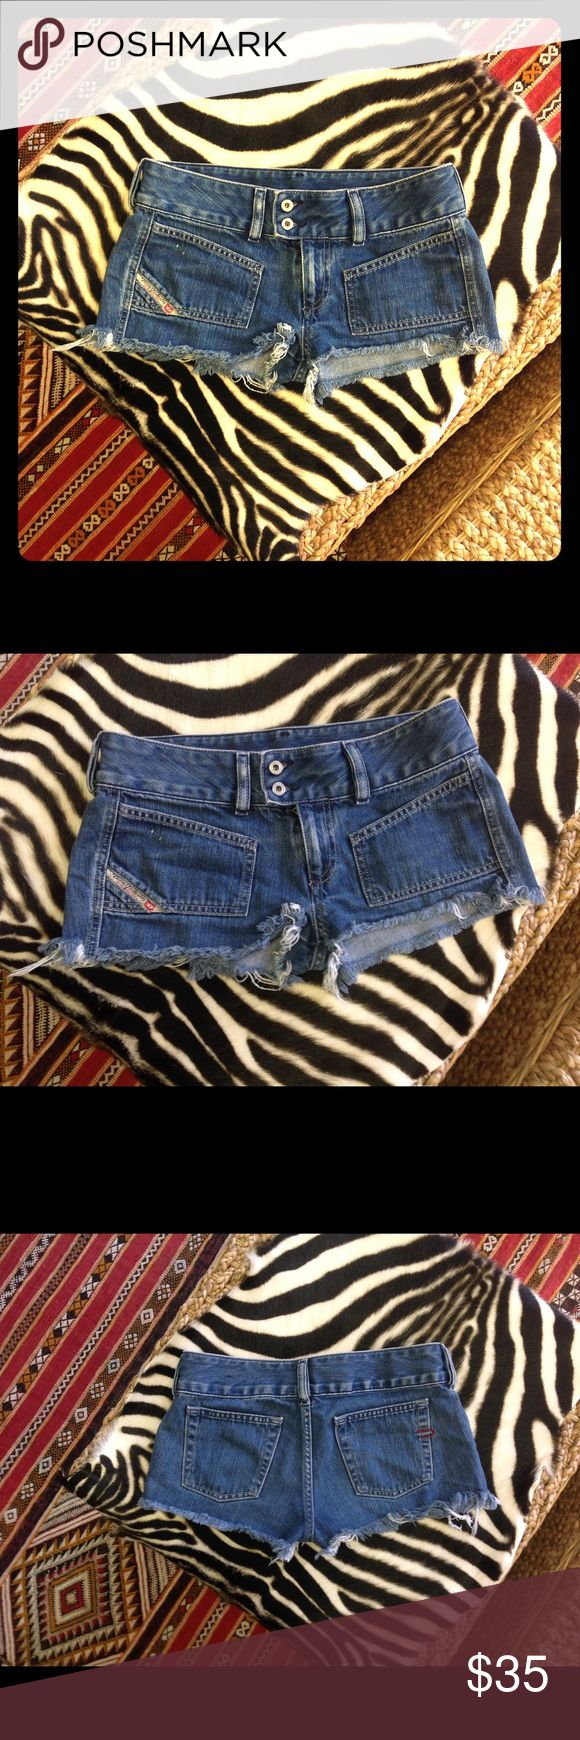 Dieisel Denim Shorts Authentic Diesel Denim Shorts Diesel Shorts Jean Shorts